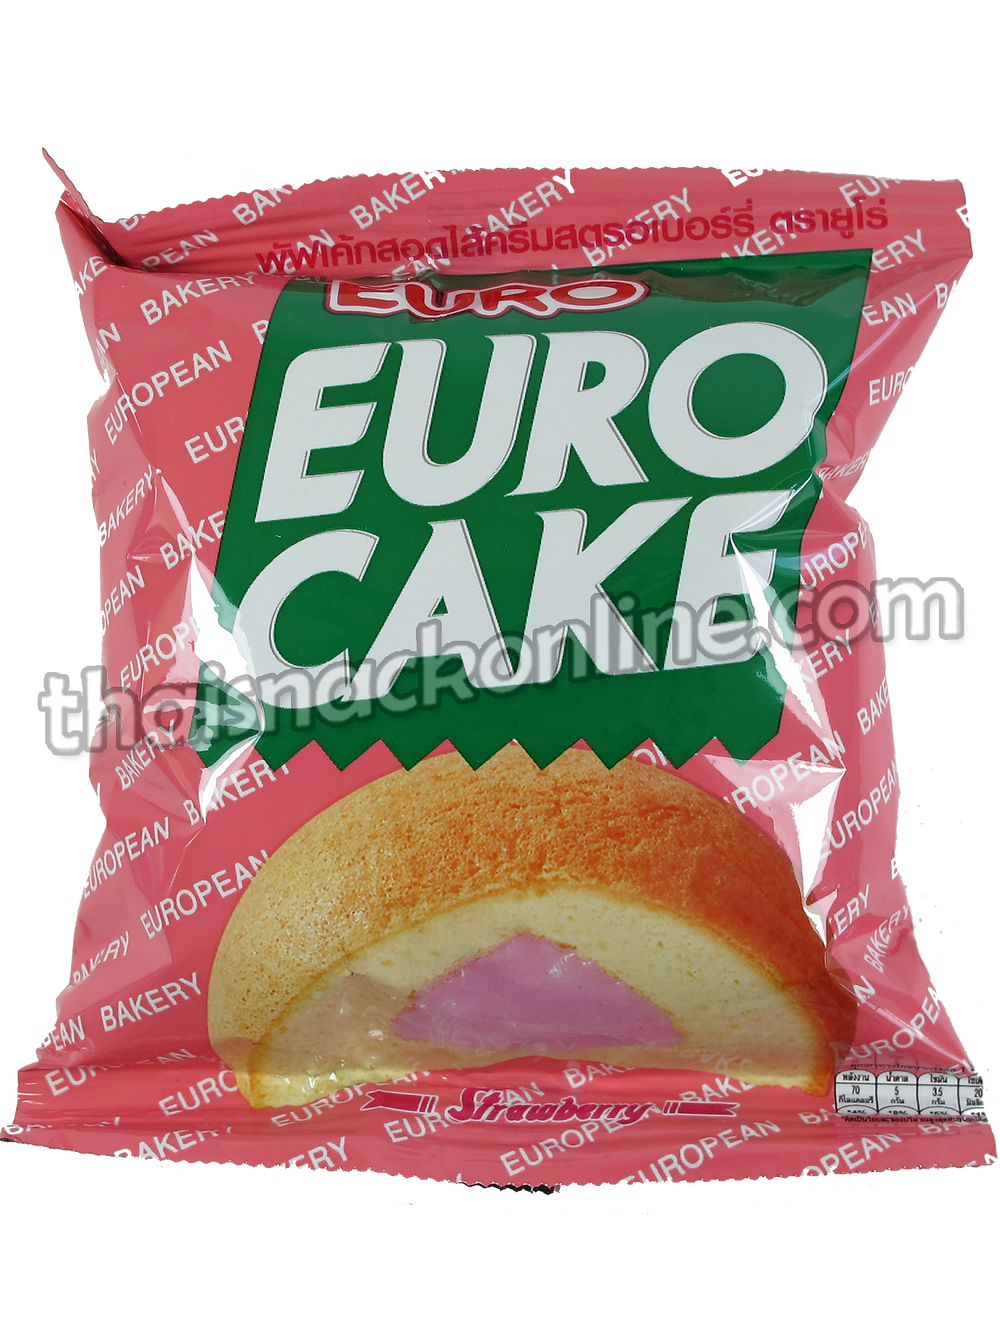 Euro - Puff Cake Strawberry